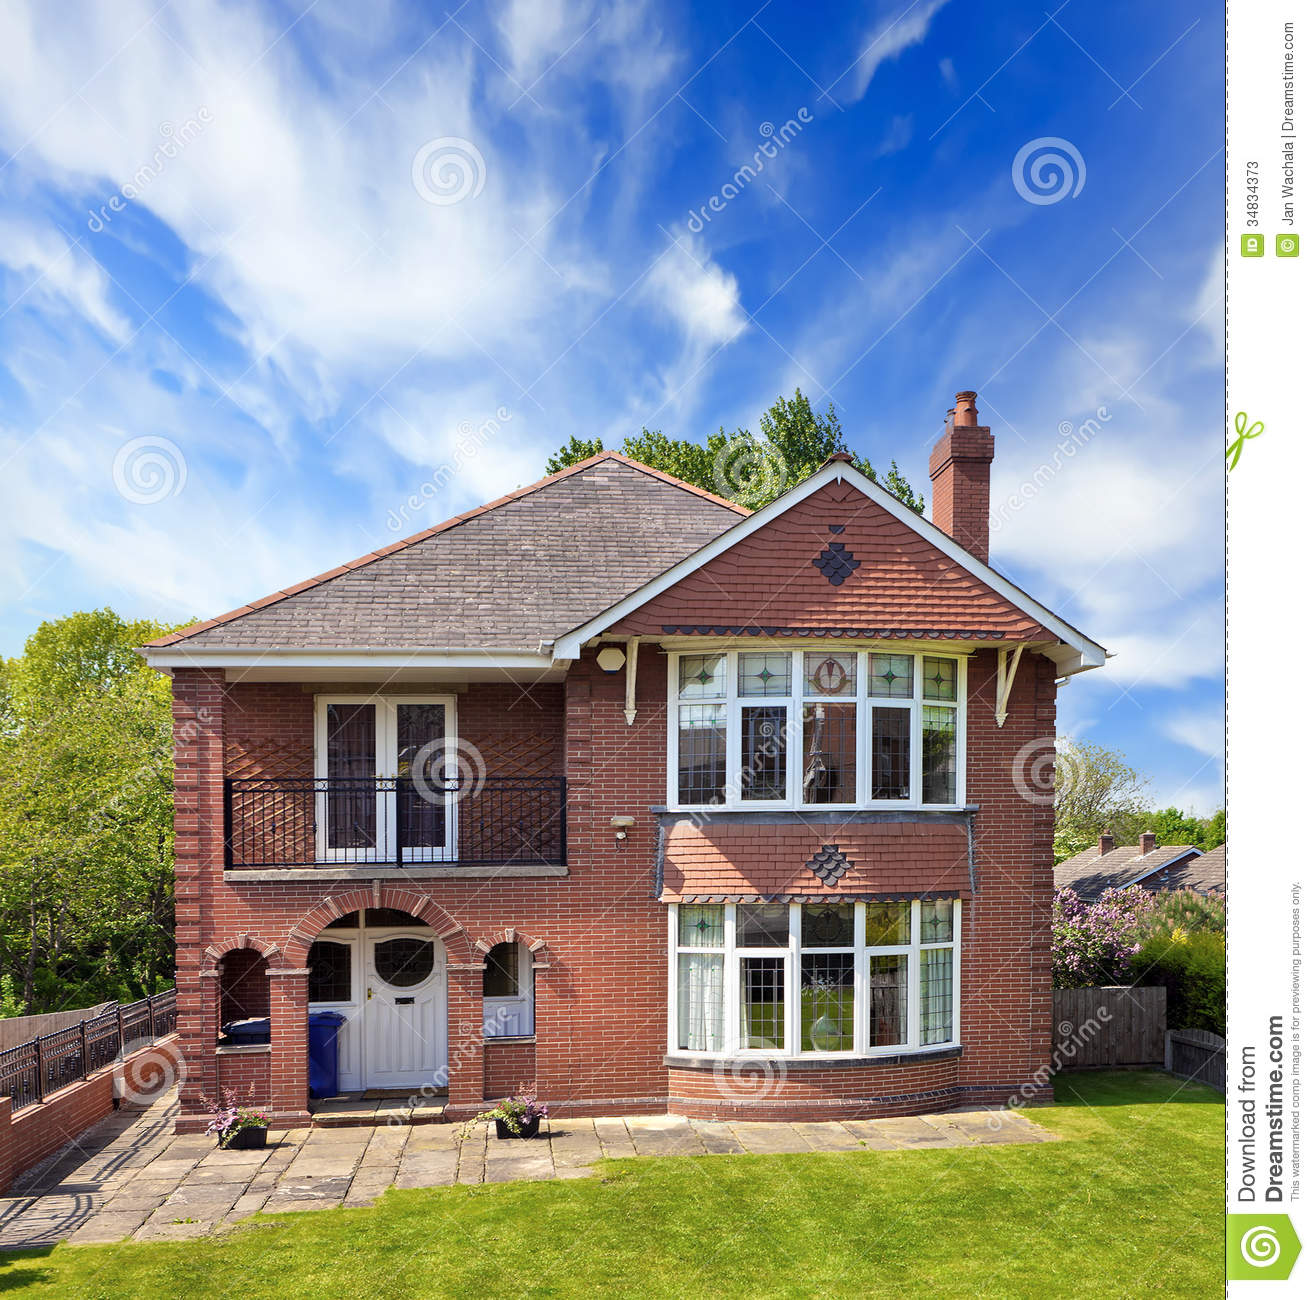 New Construction Brick Home: Typical Red Brick House Stock Photos